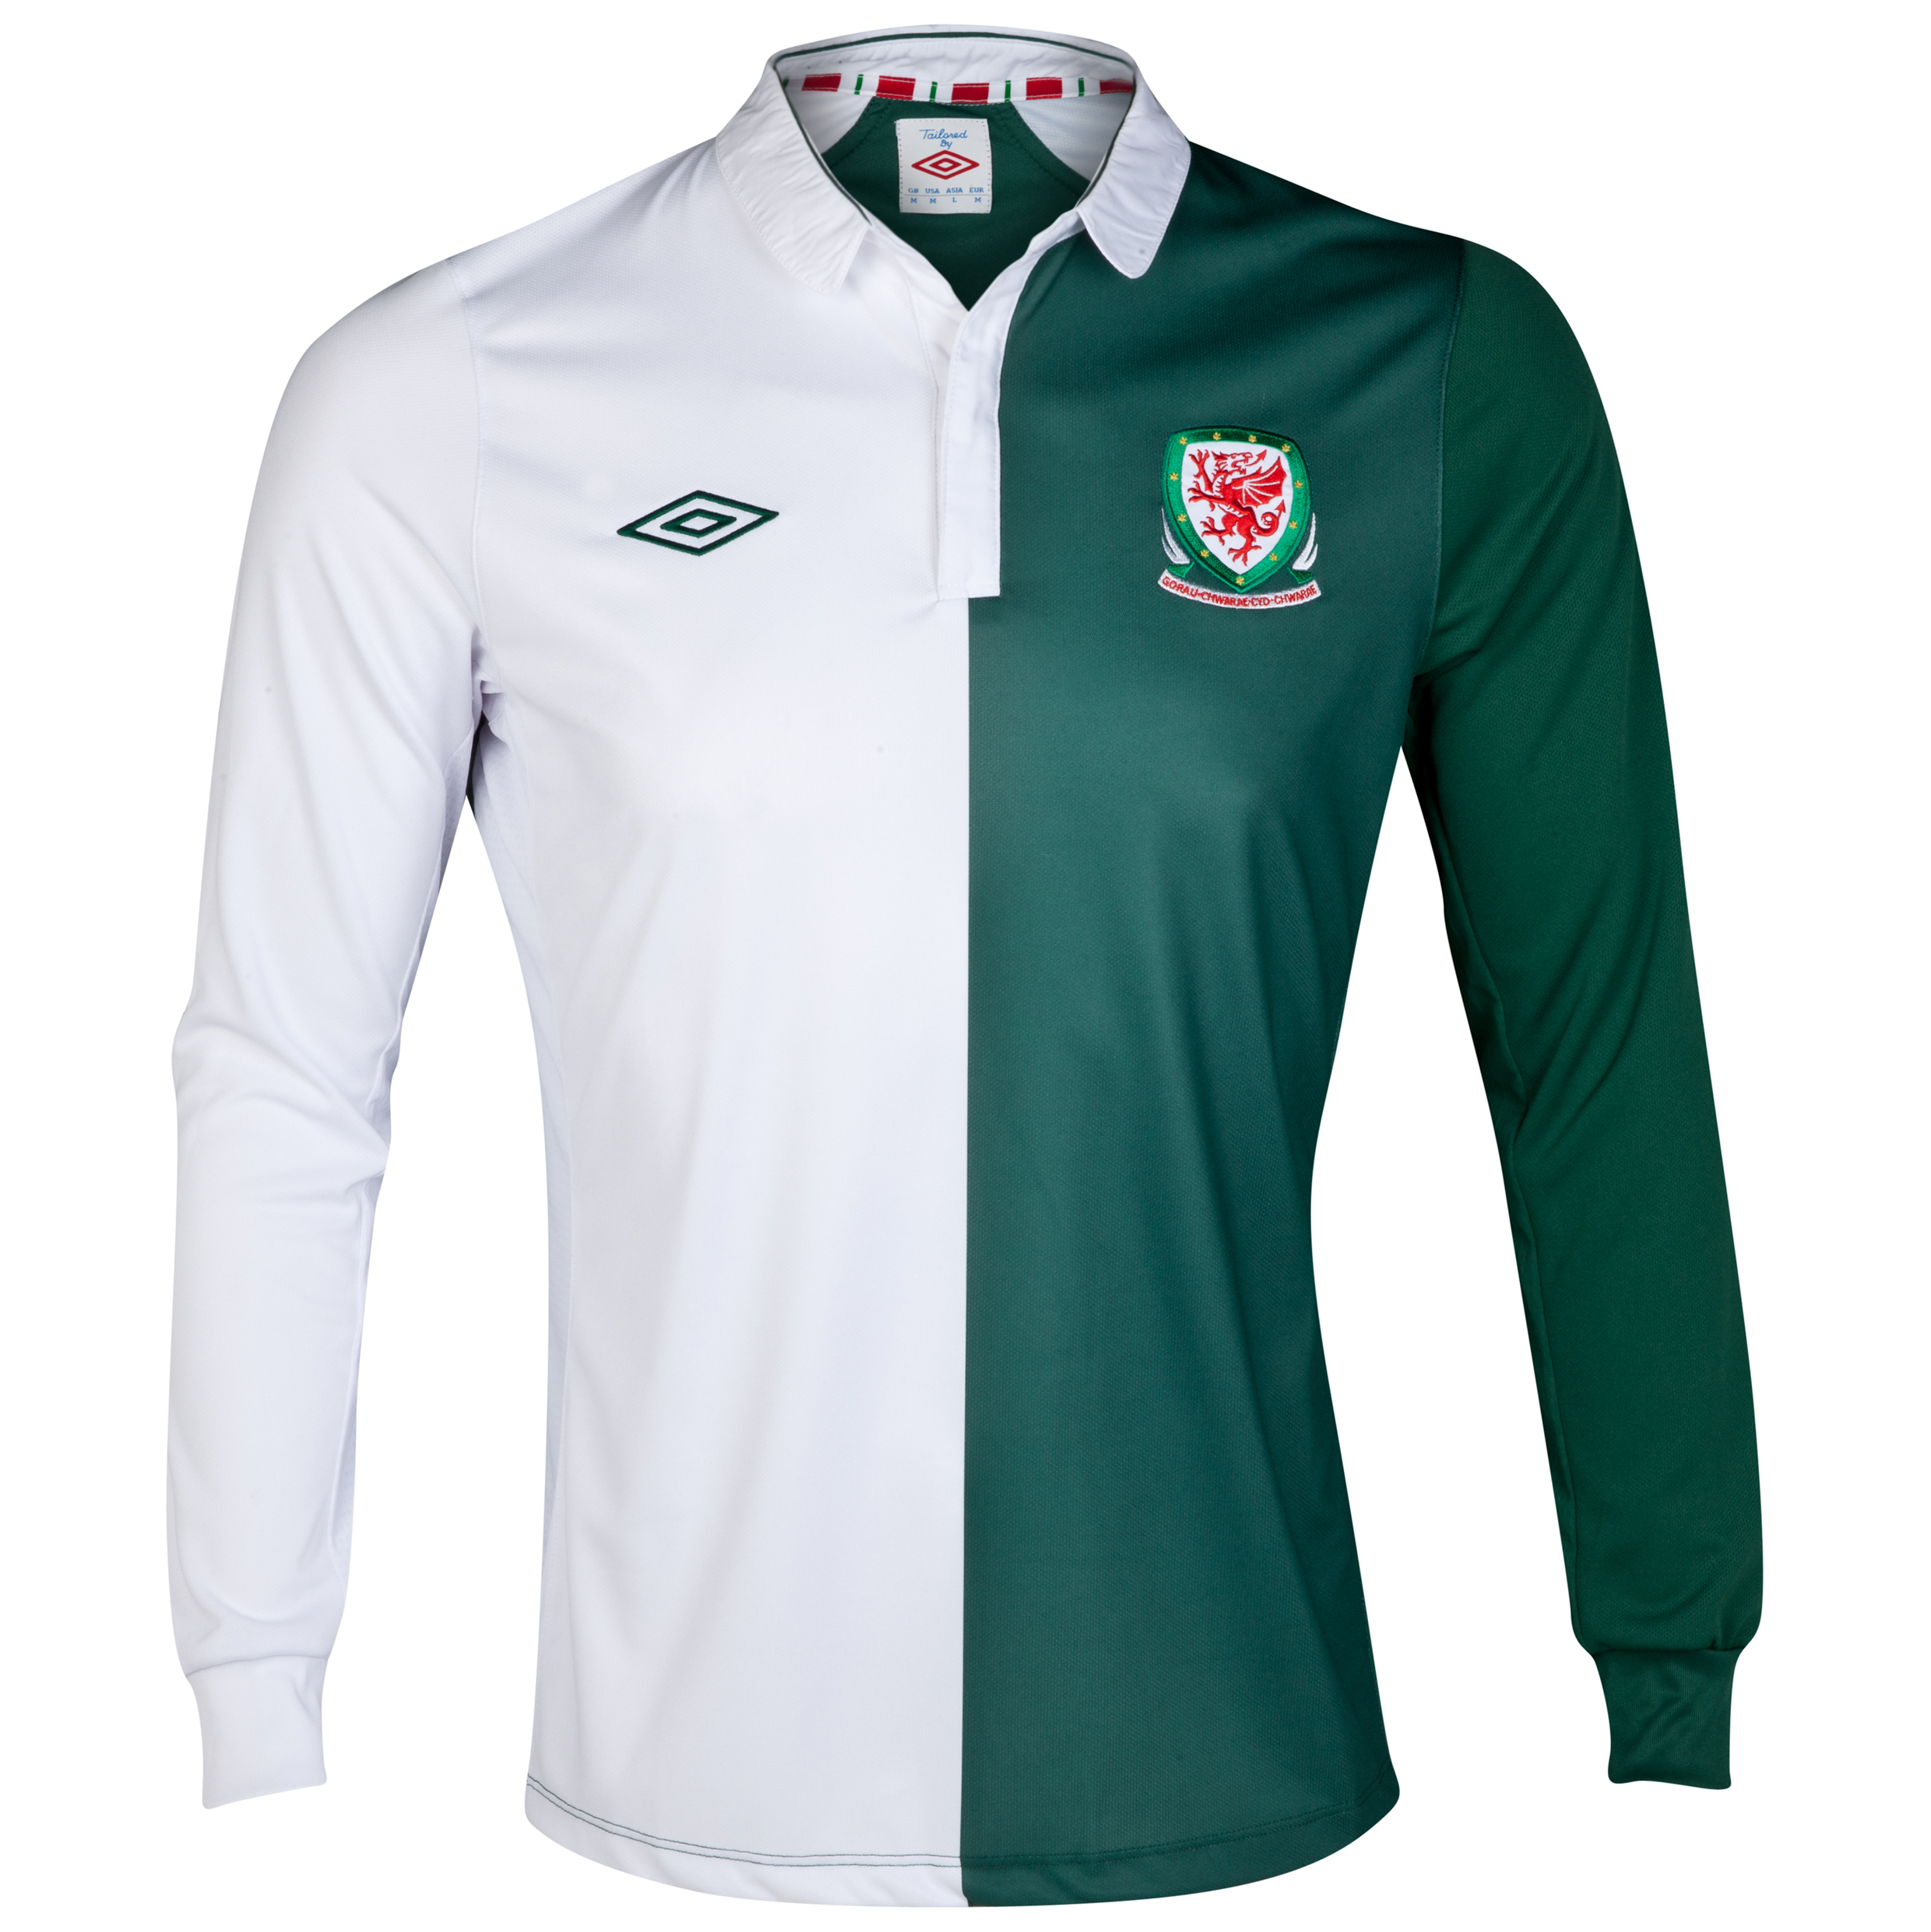 Wales Away Shirt 2012/13 - Long Sleeve